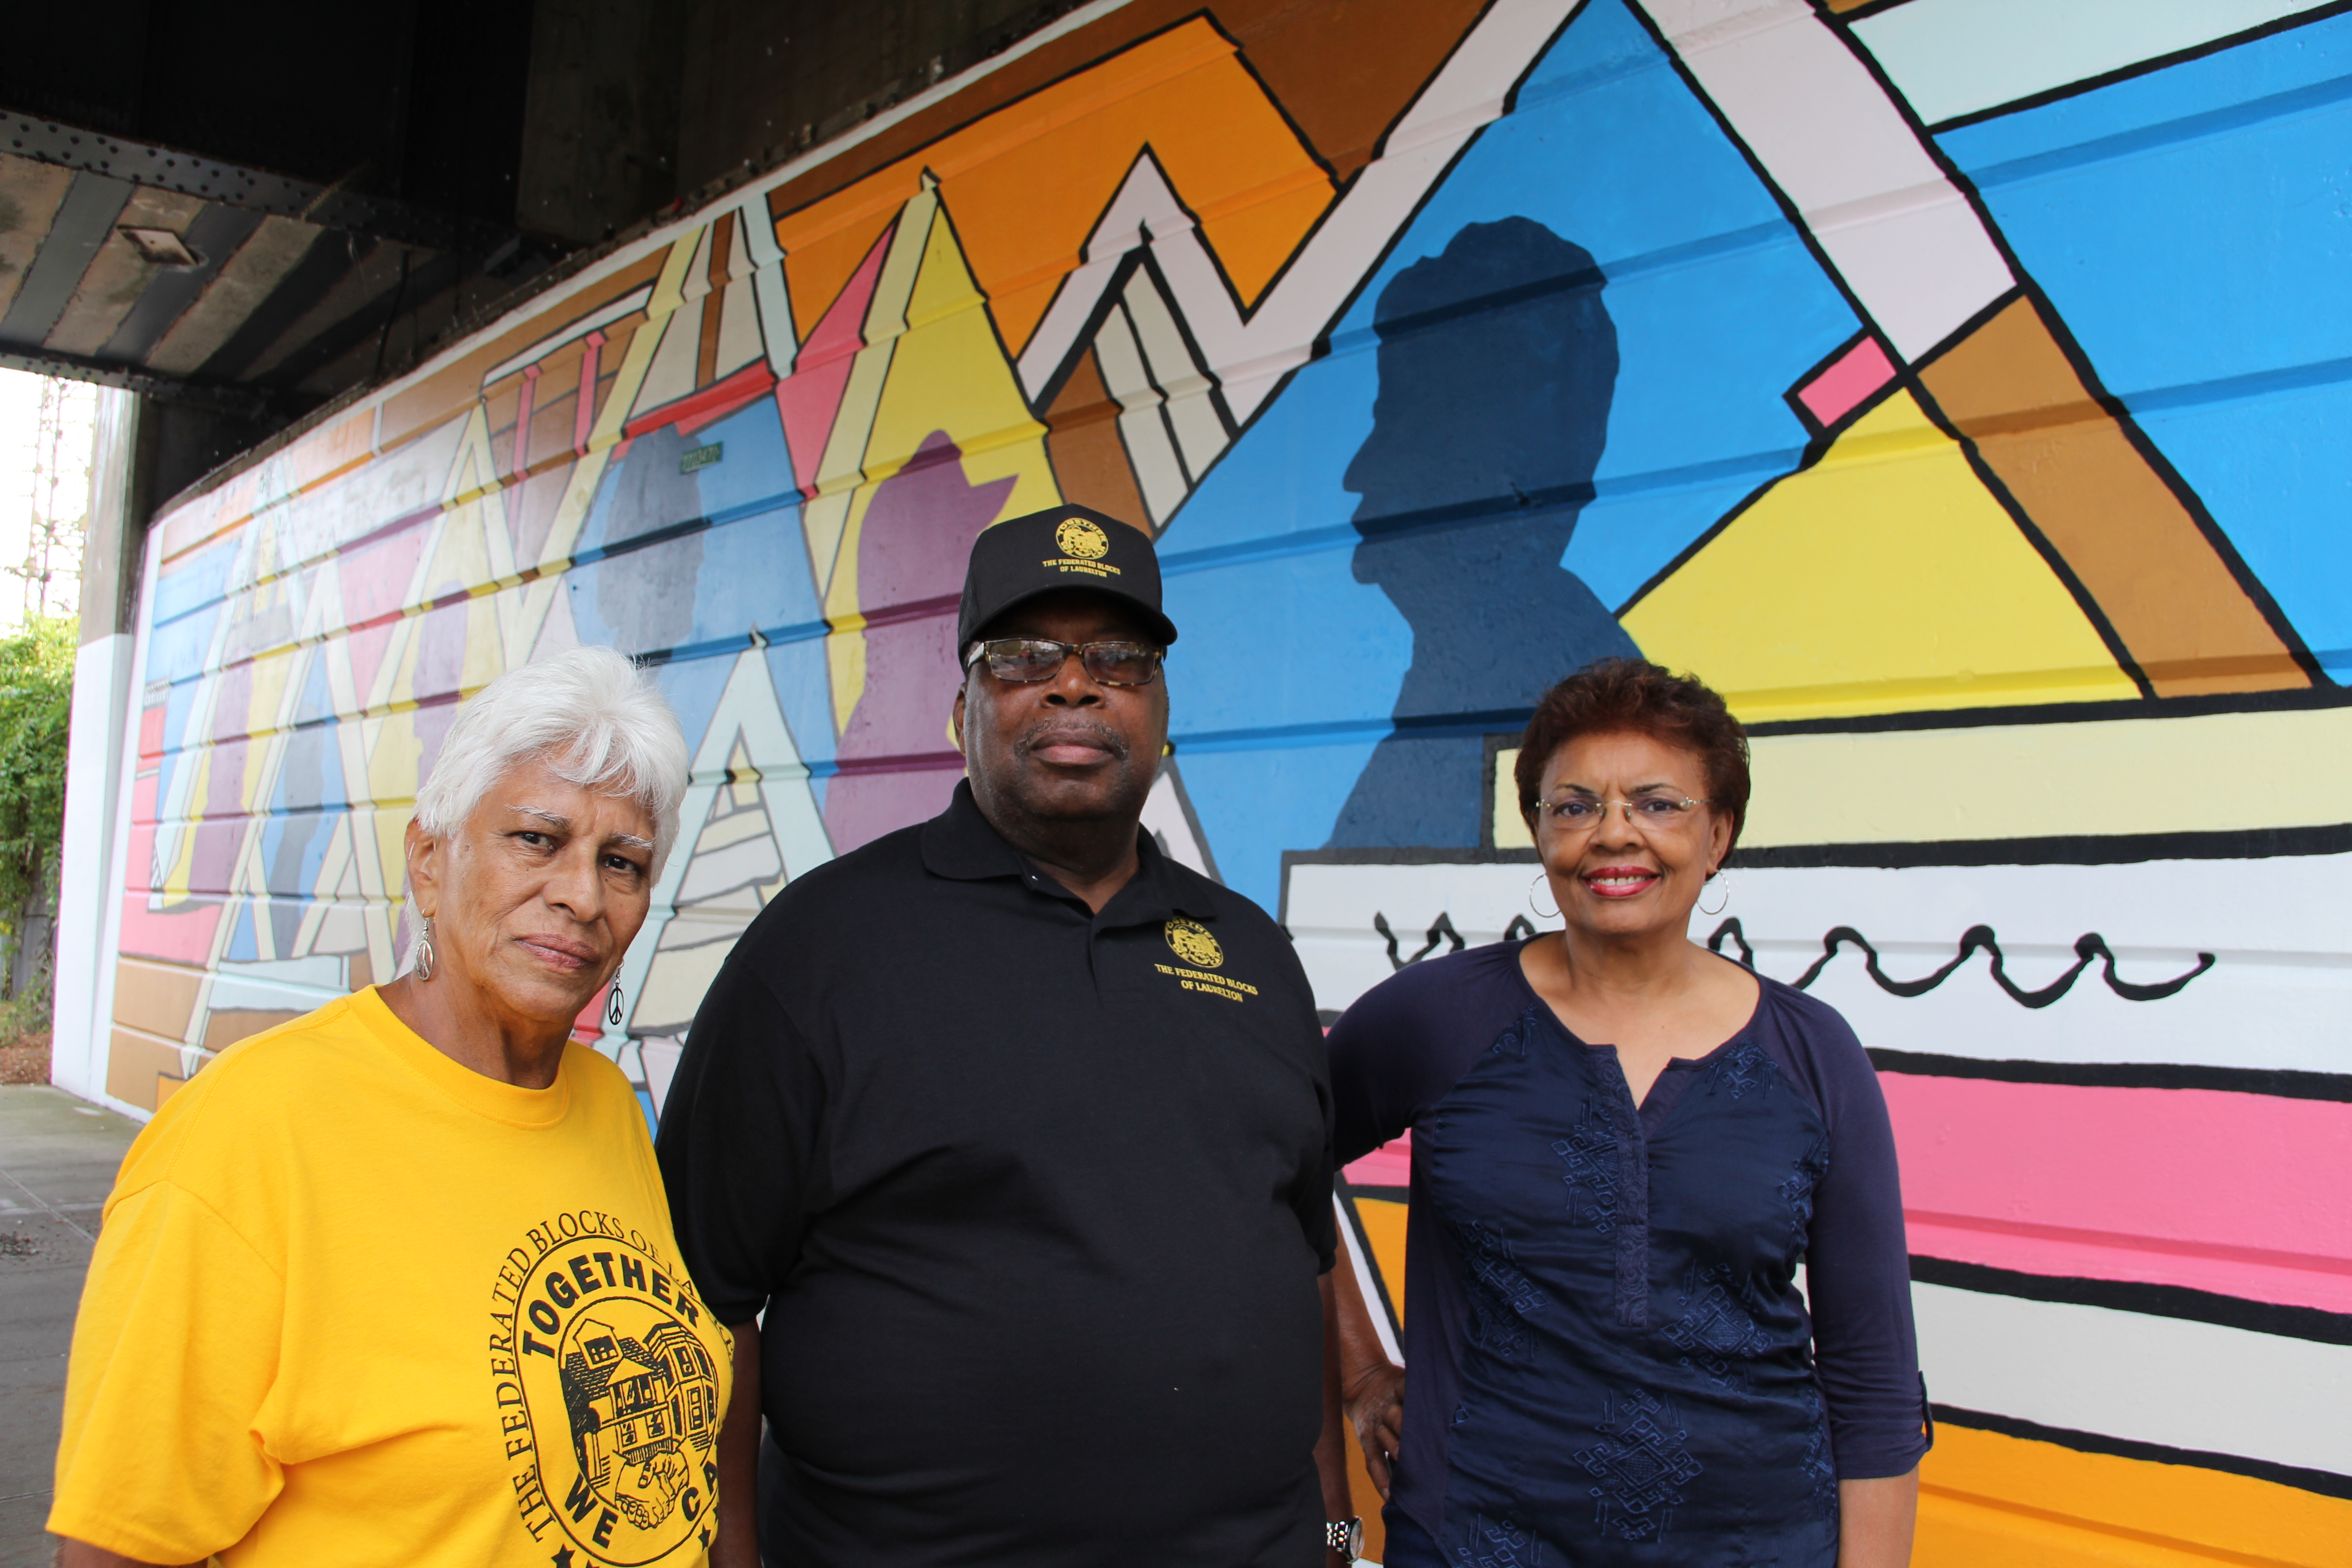 Local Activists of Over 30 Years Are Captured in Mural - laurelton nyc